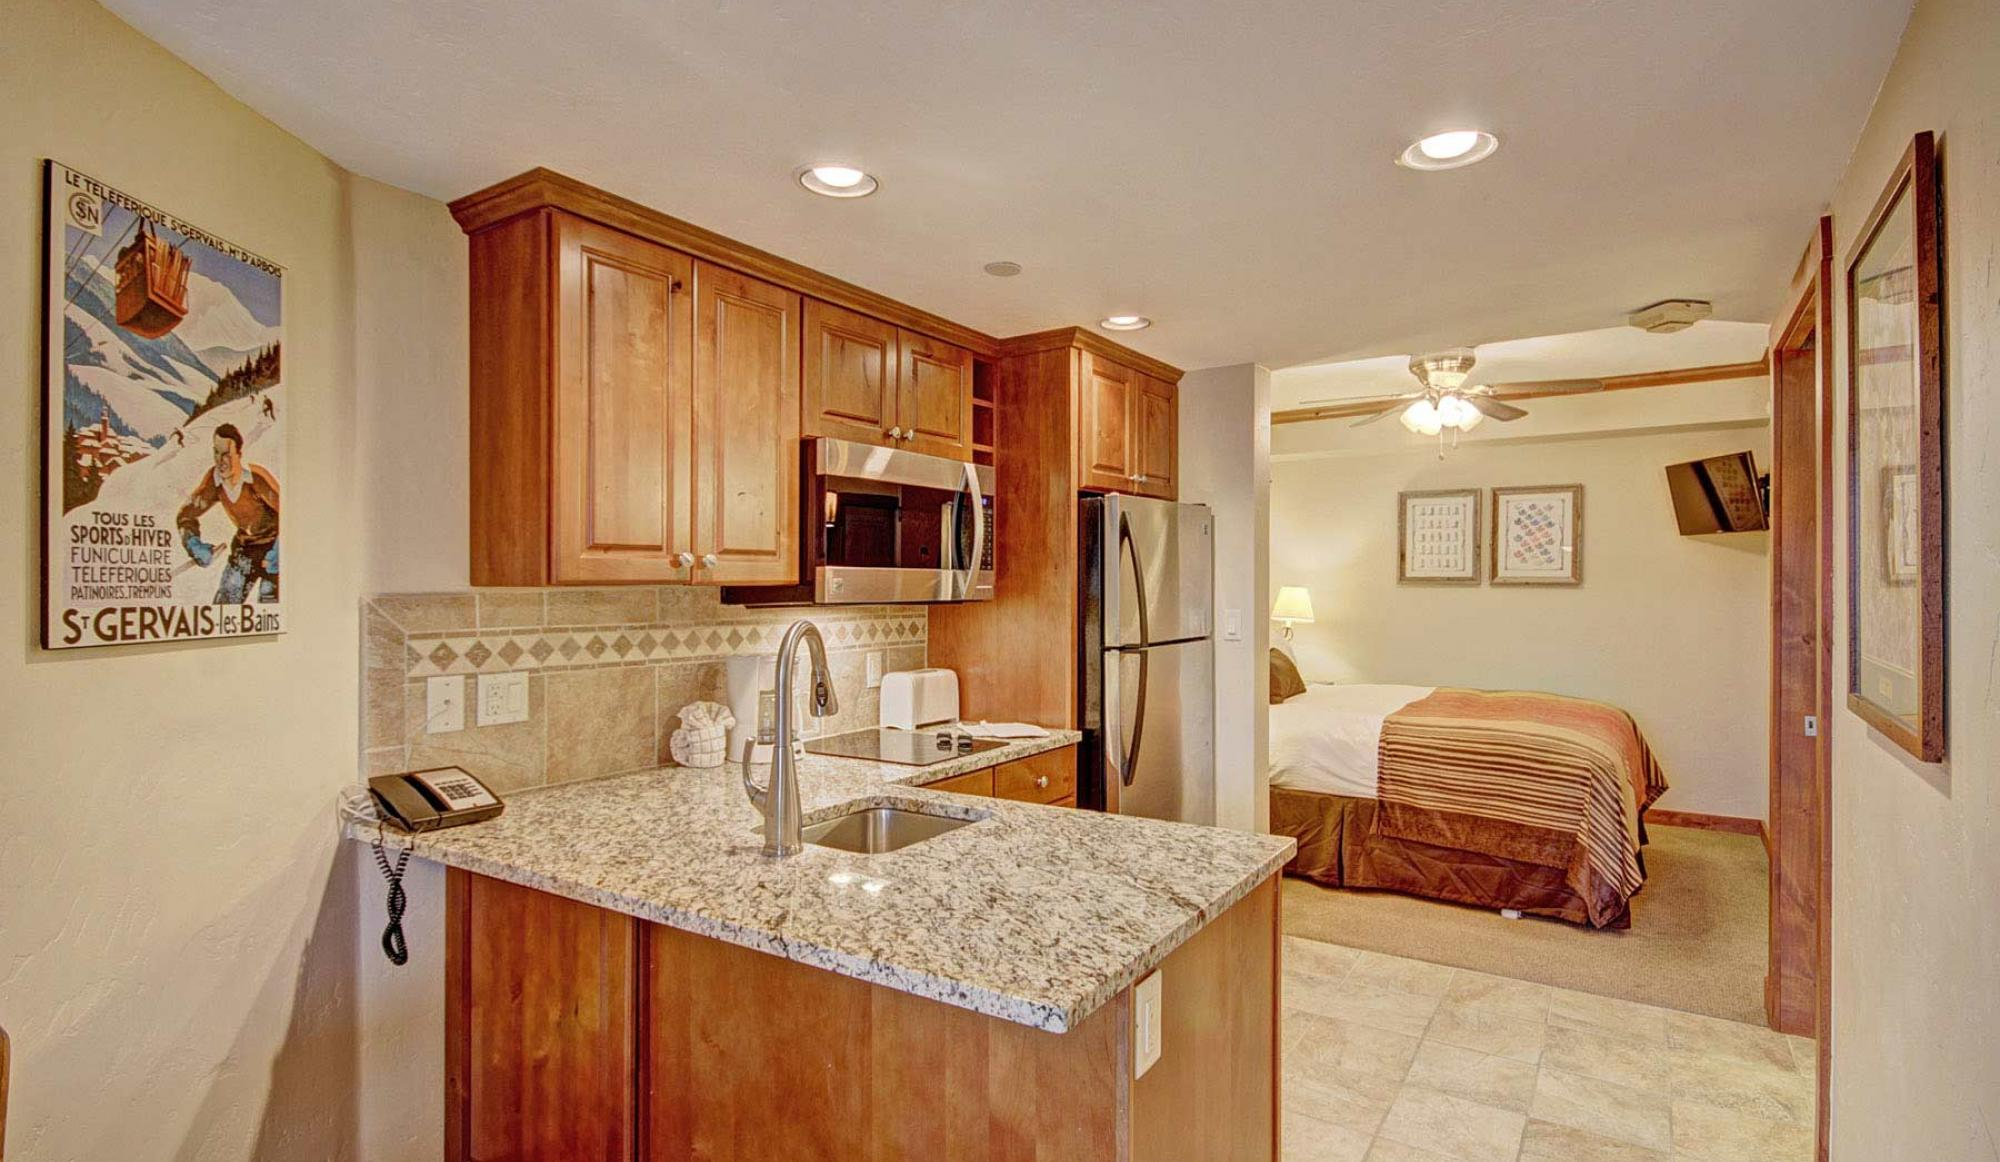 Beaver Run Resort Studio Apartment in Breckenridge